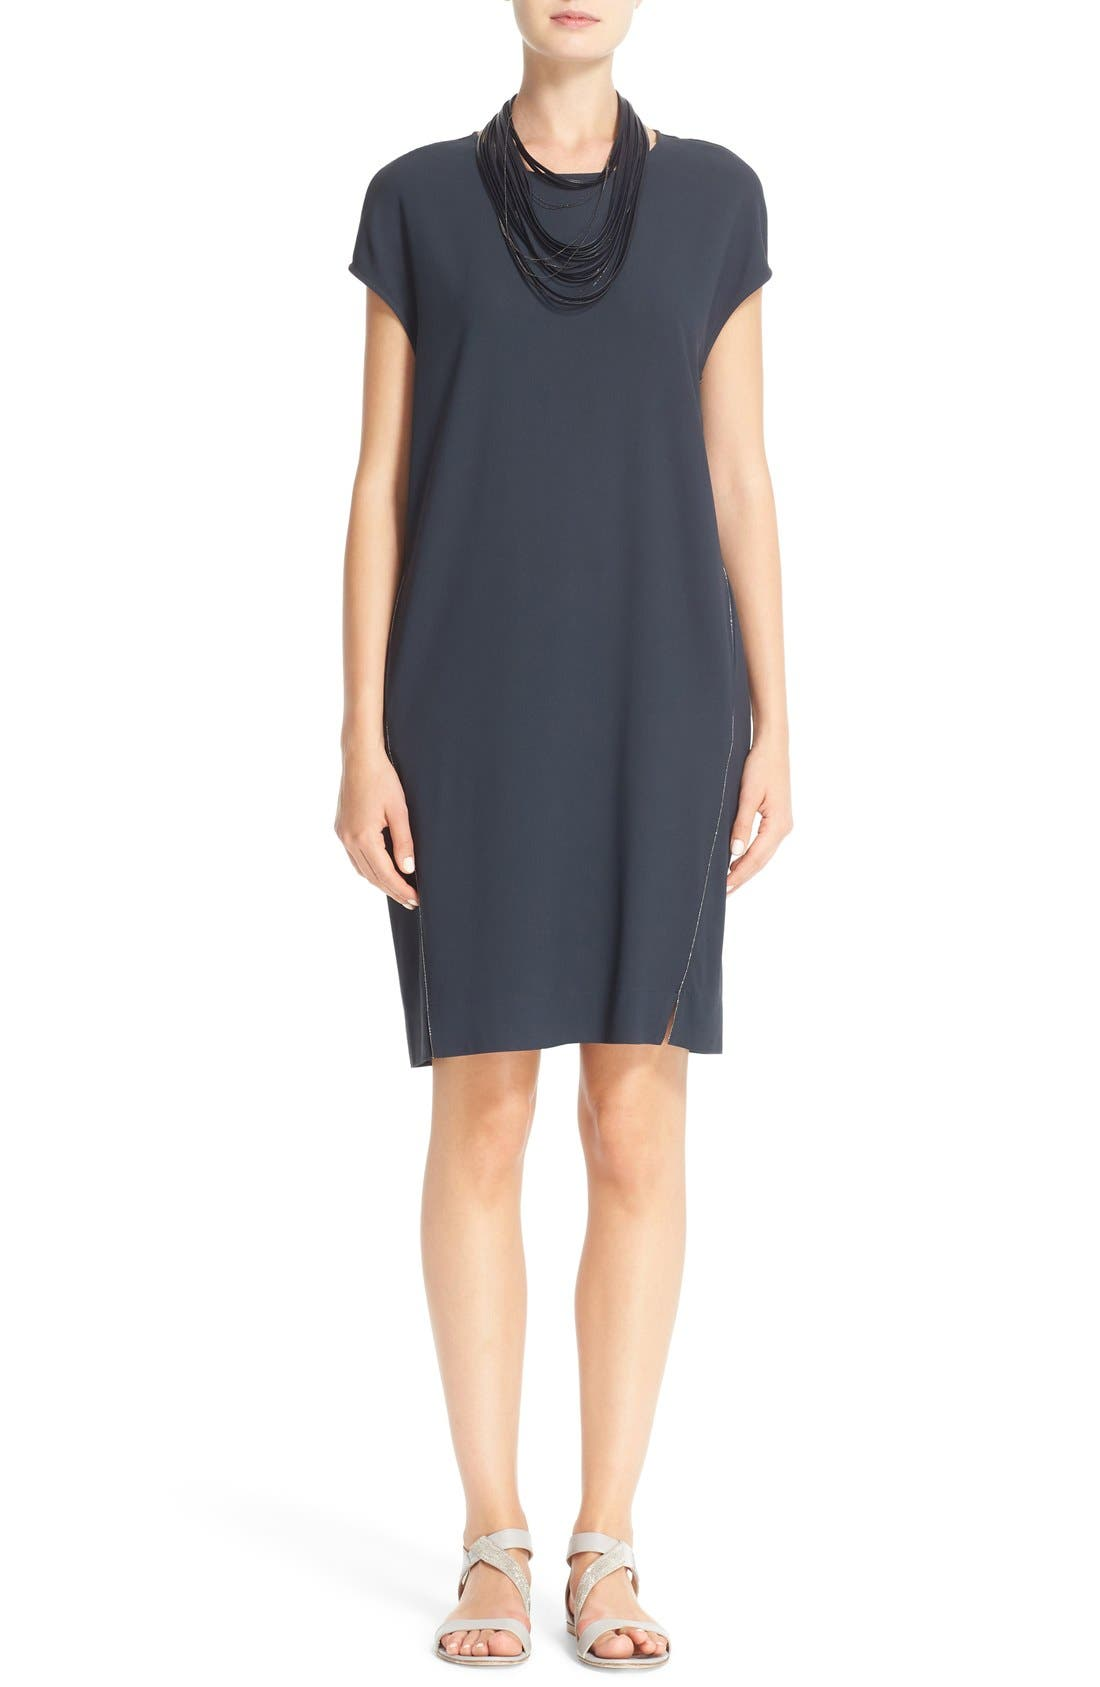 FABIANA FILIPPI Mollini Trim Dress